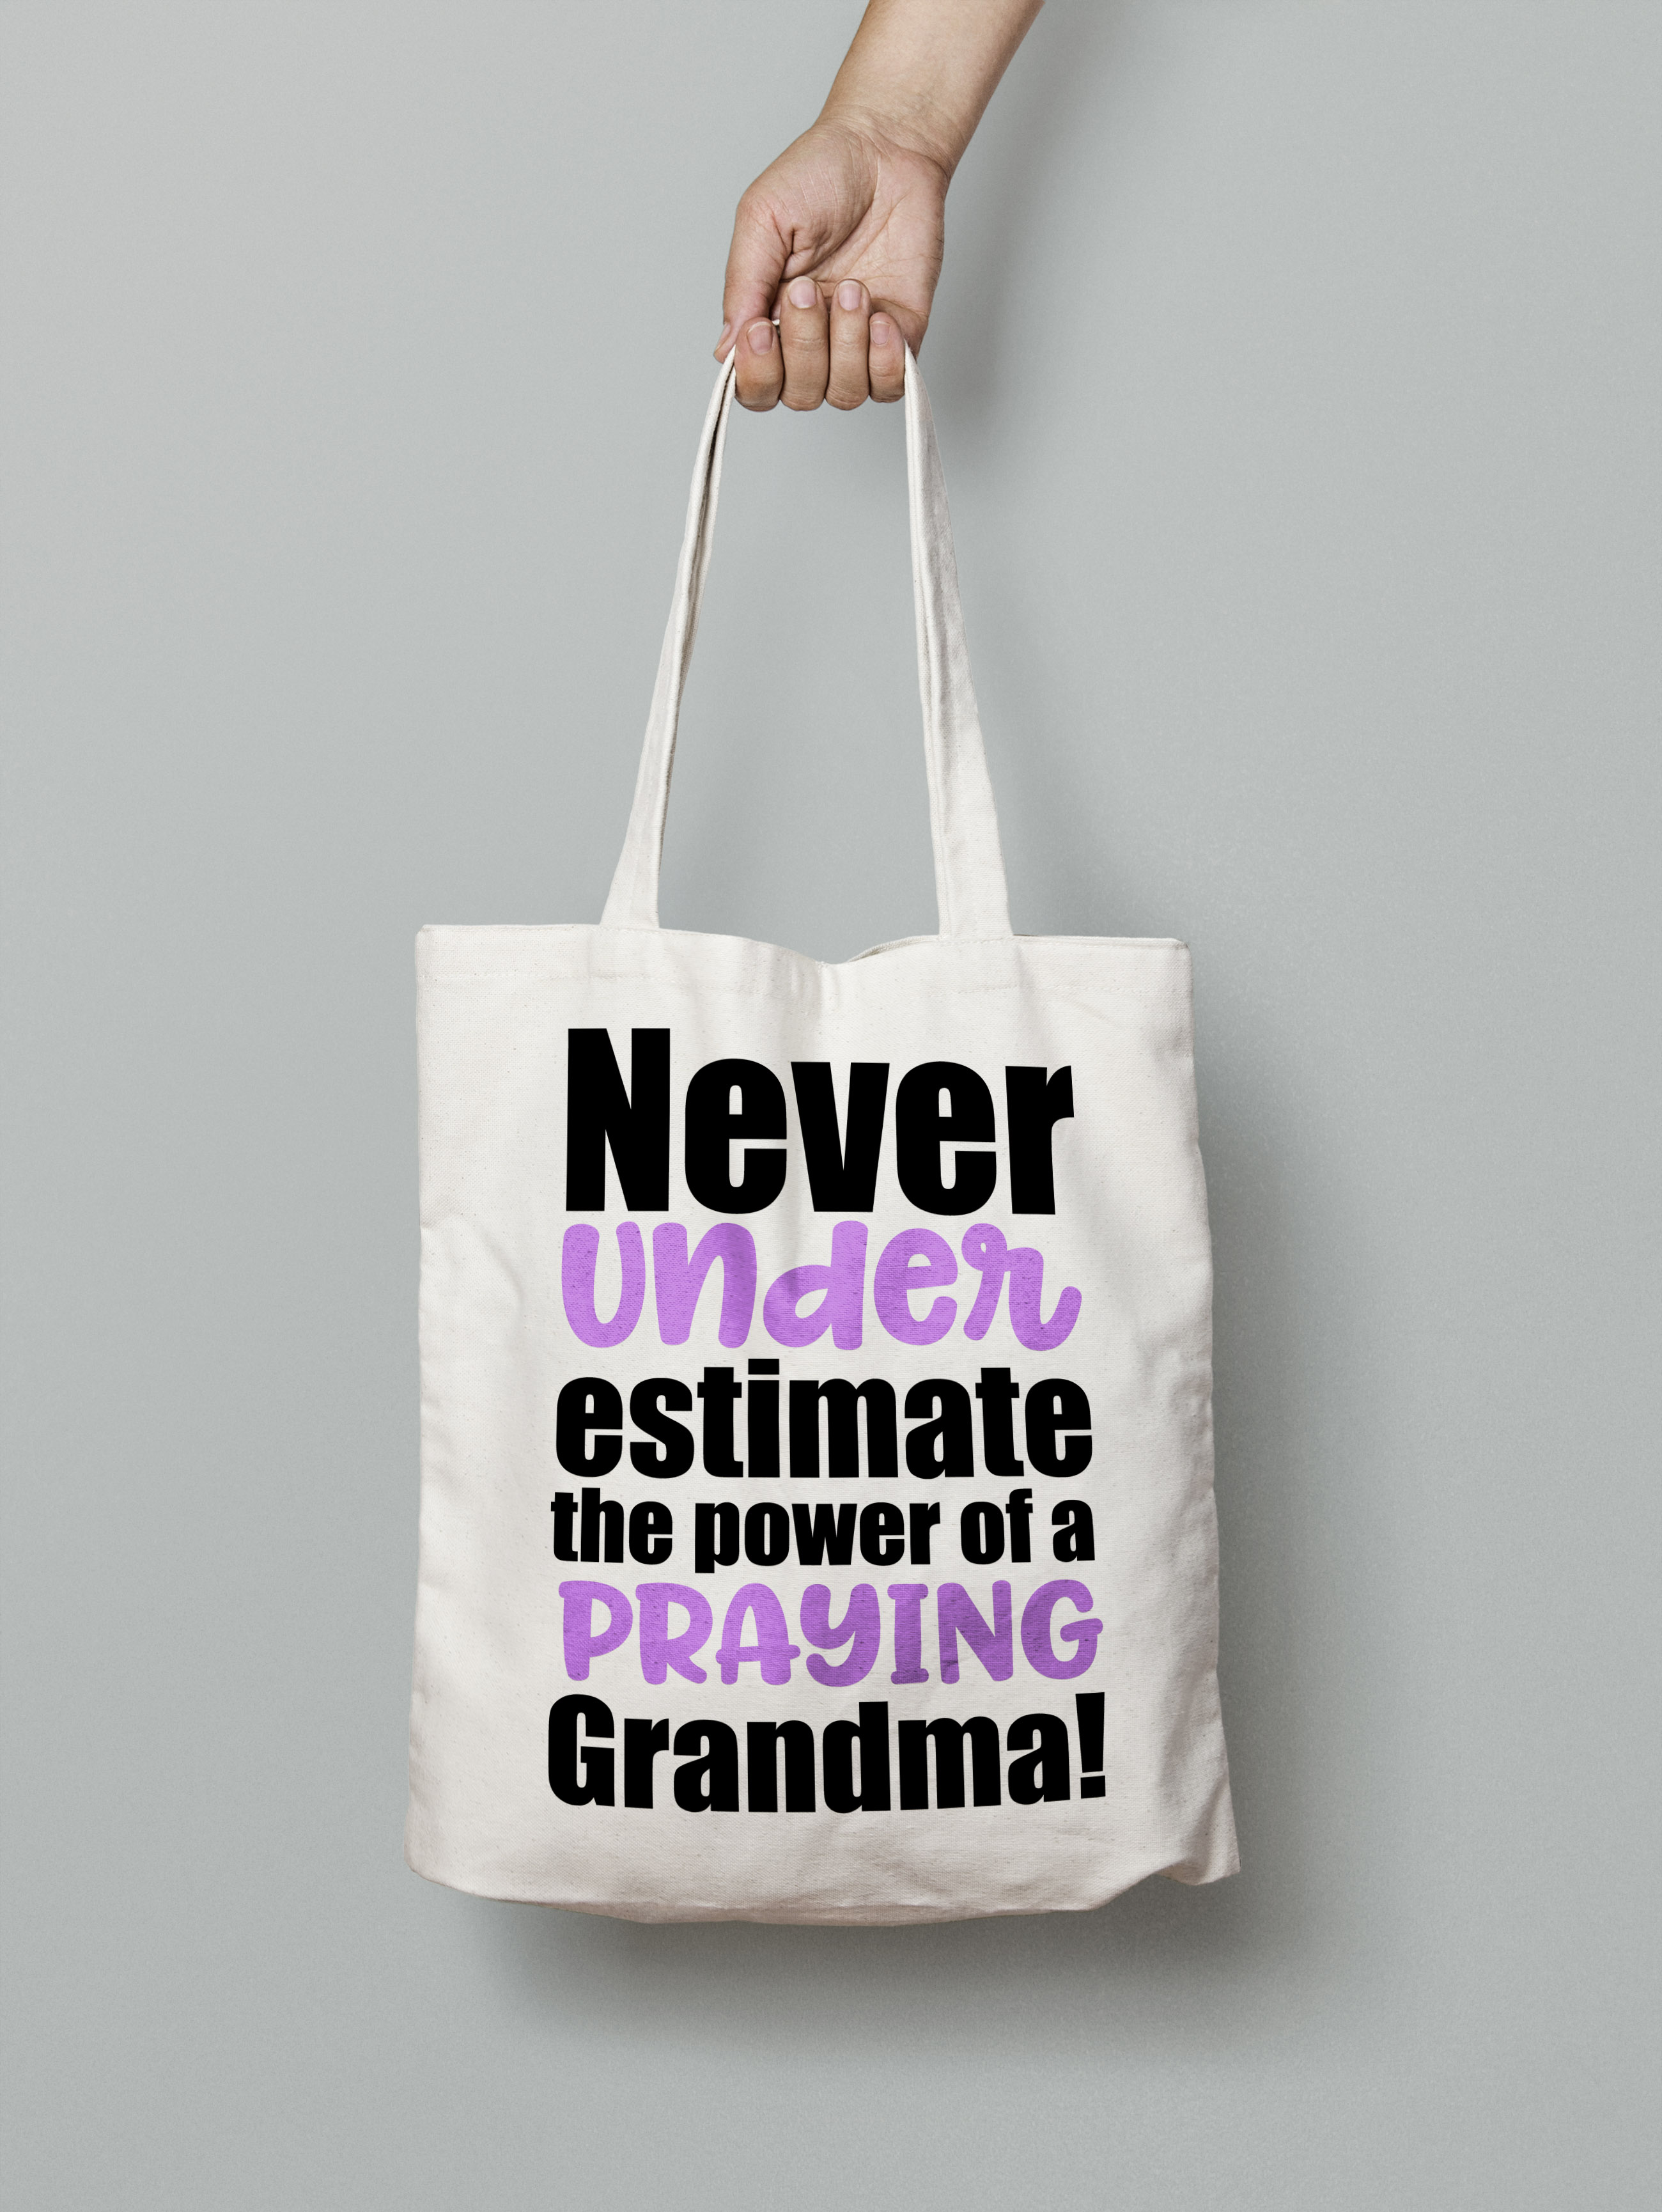 Never underestimate the power of a praying grandma svg example image 4